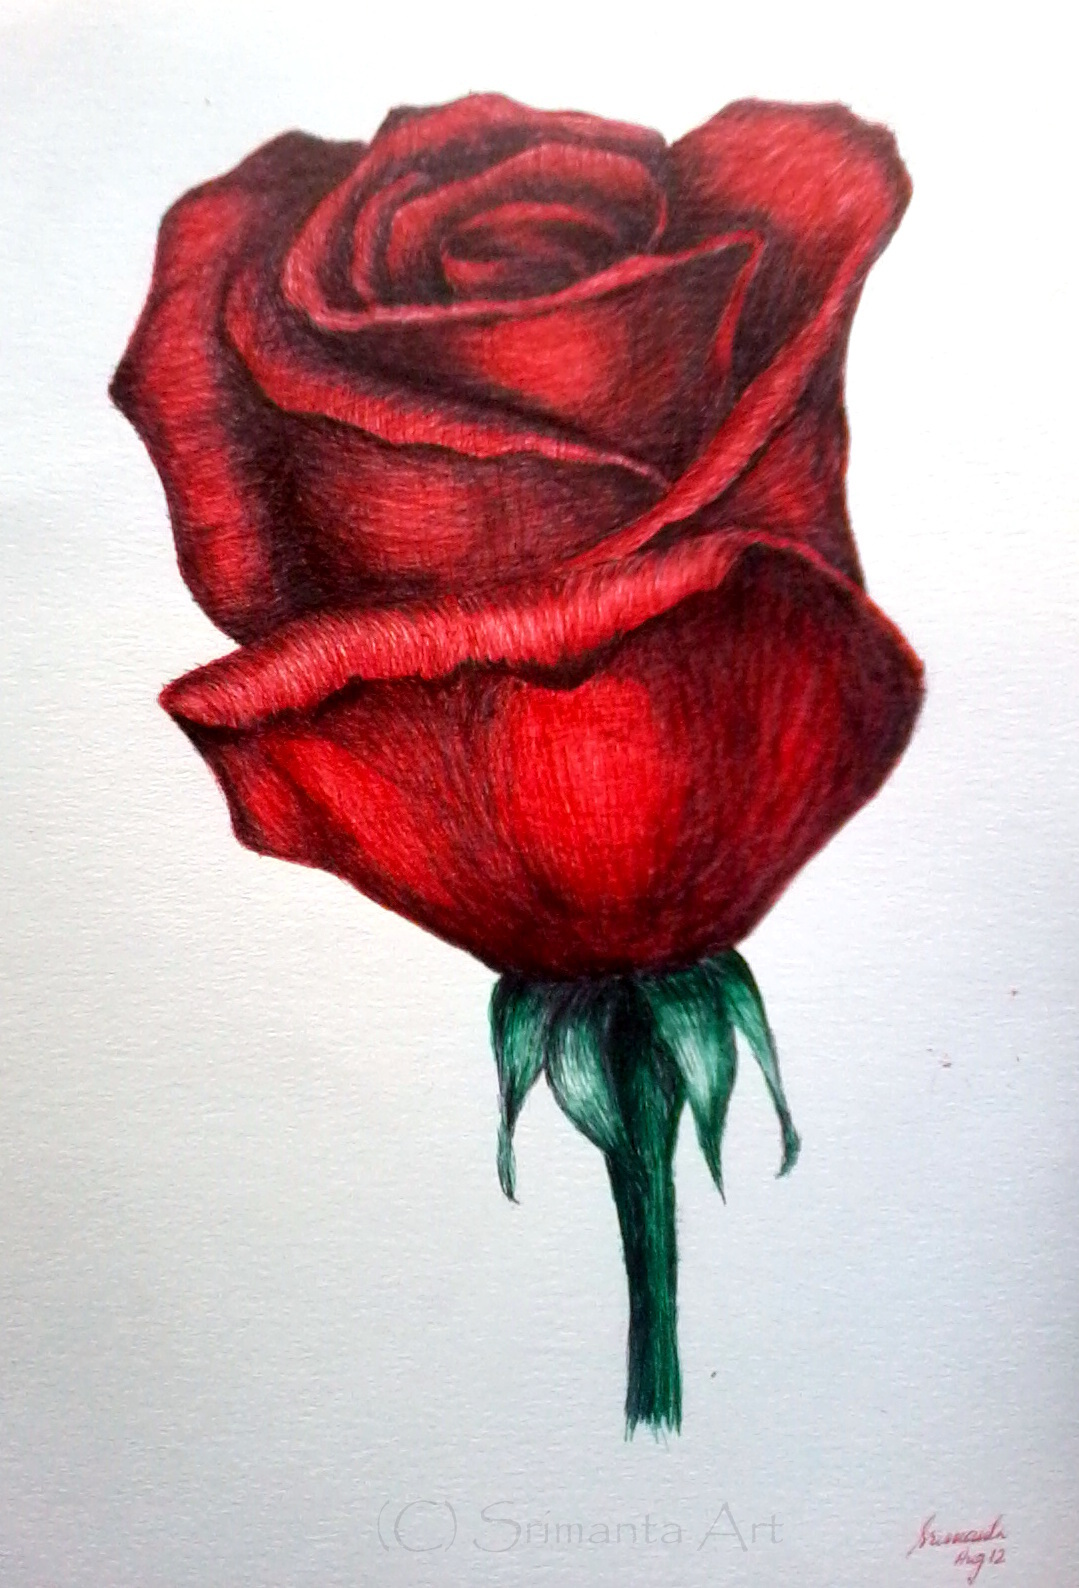 Drawn rose ballpoint pen And And Black Drawing Black